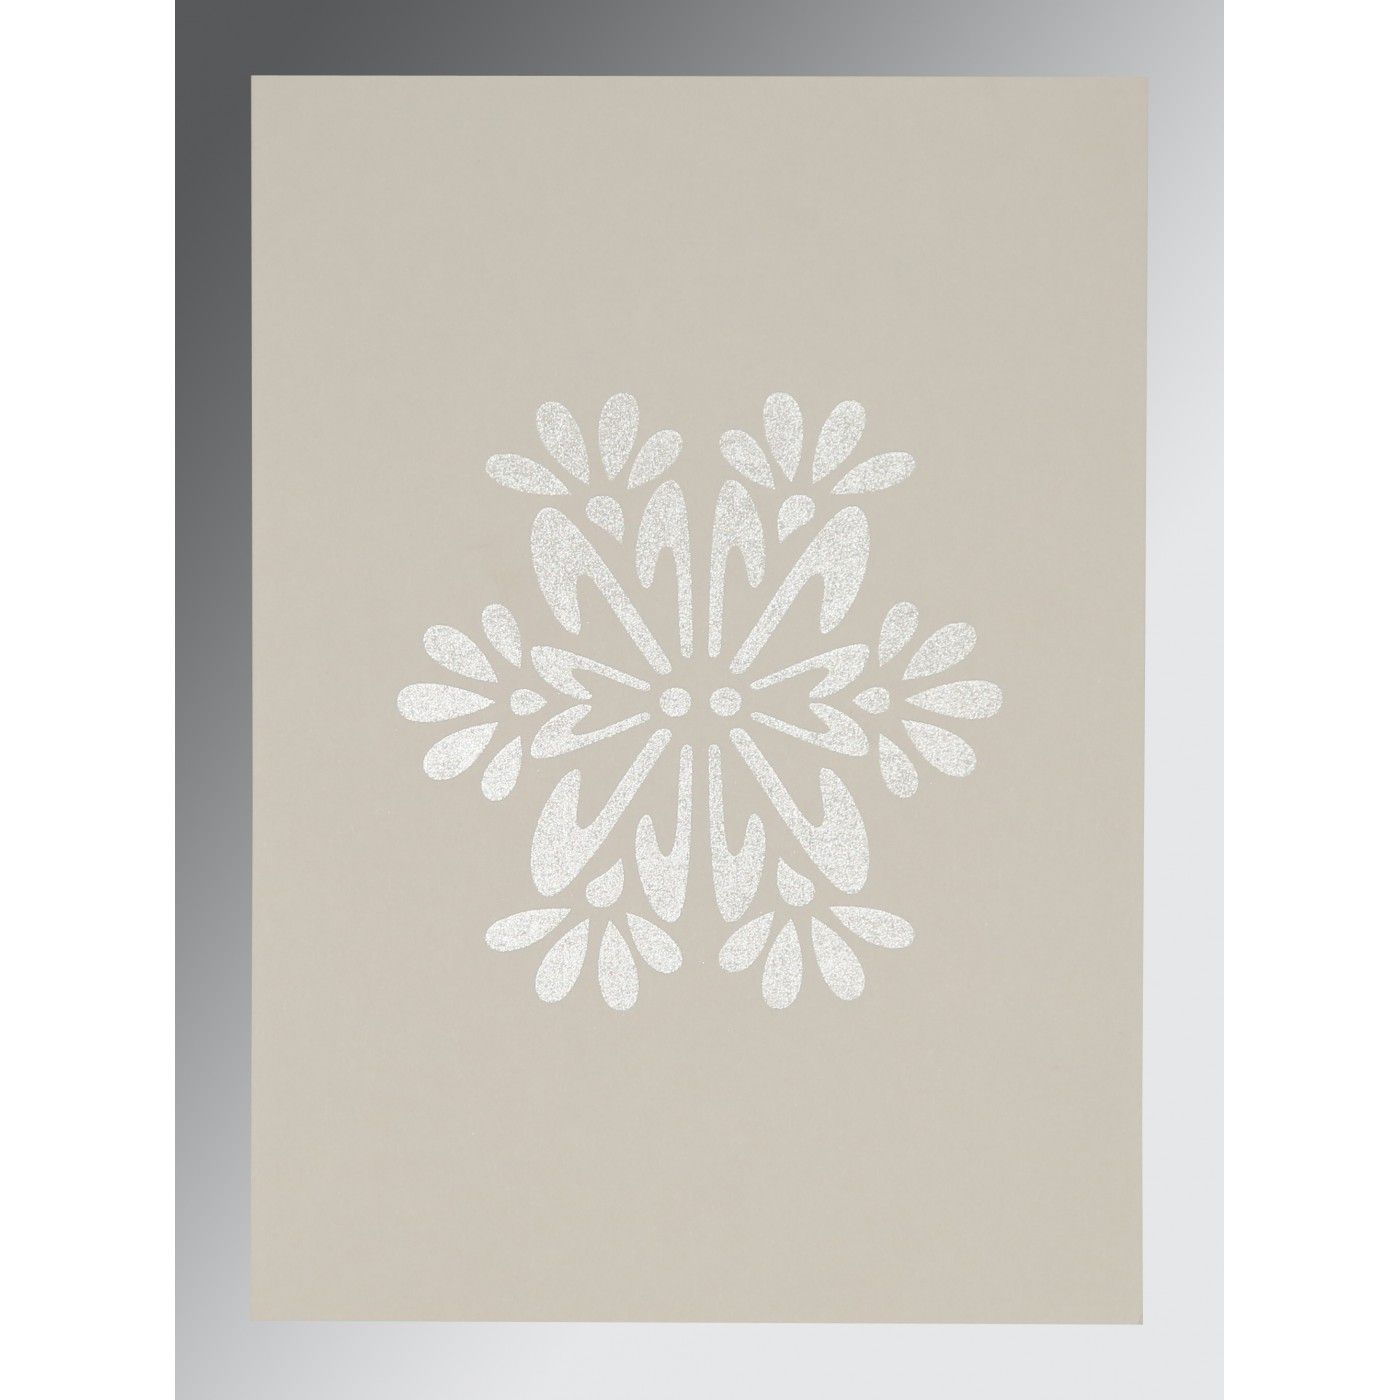 RAW SIENNA MATTE FLORAL THEMED - FOIL STAMPED WEDDING INVITATION : CG-8237K - IndianWeddingCards